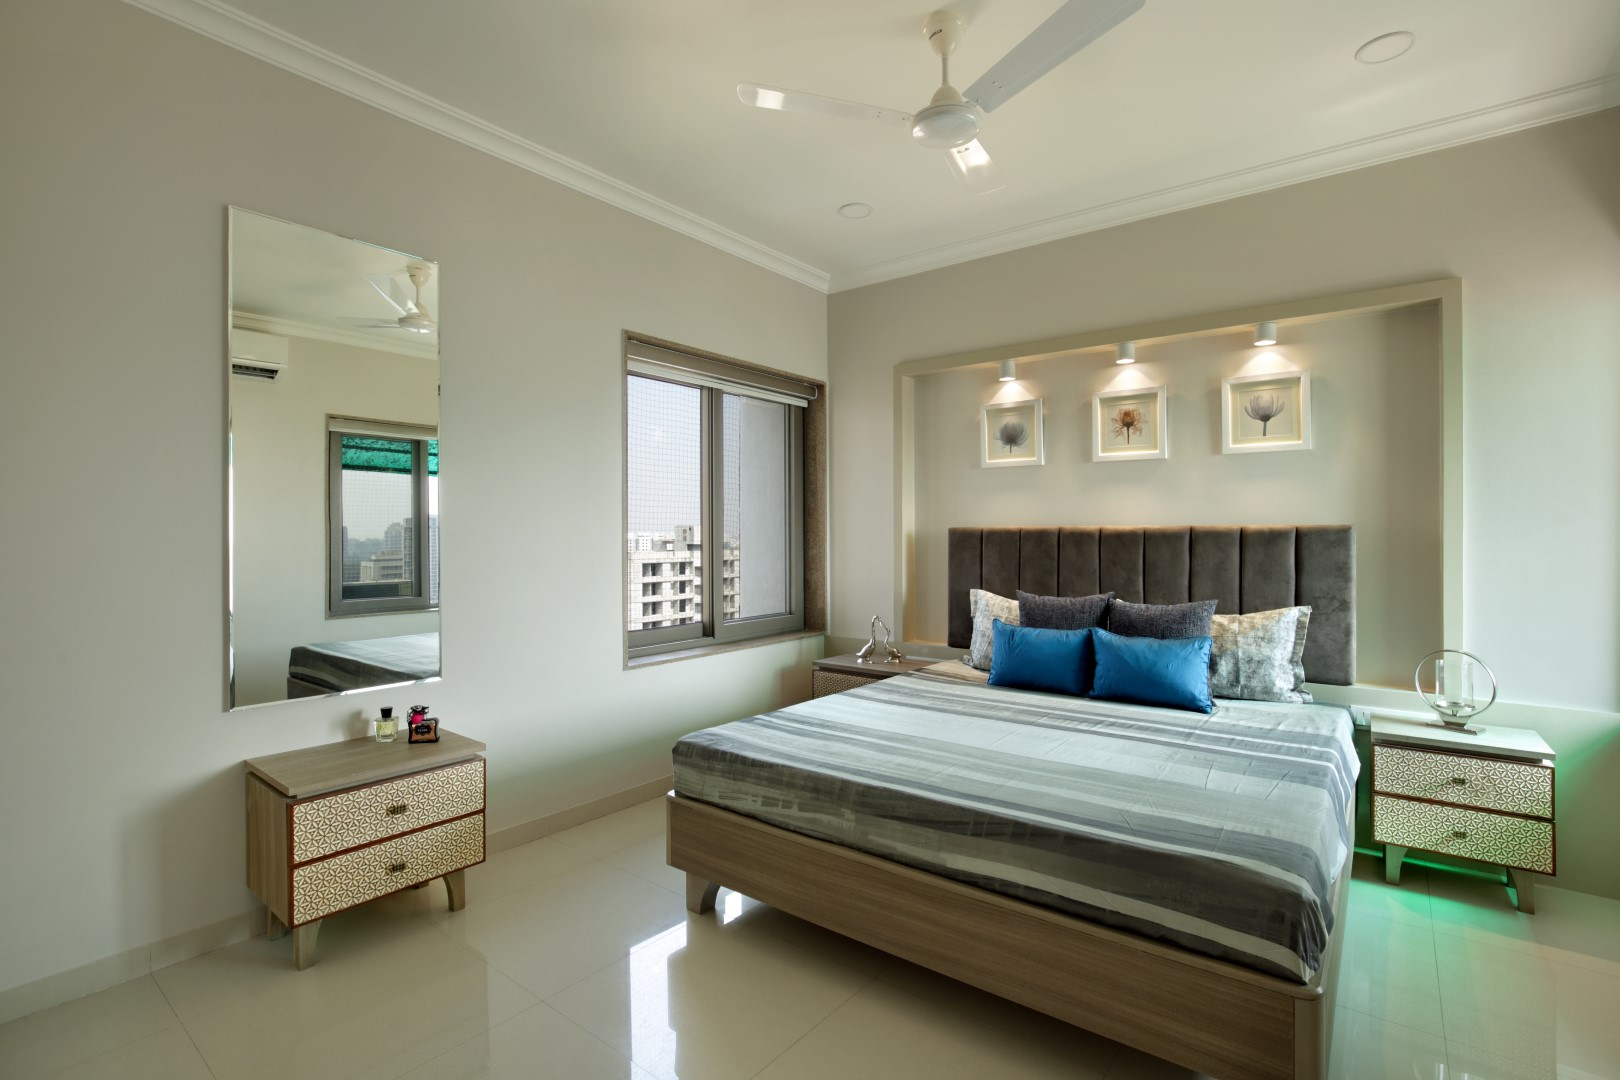 2-bhk-interior-design-2.jpg